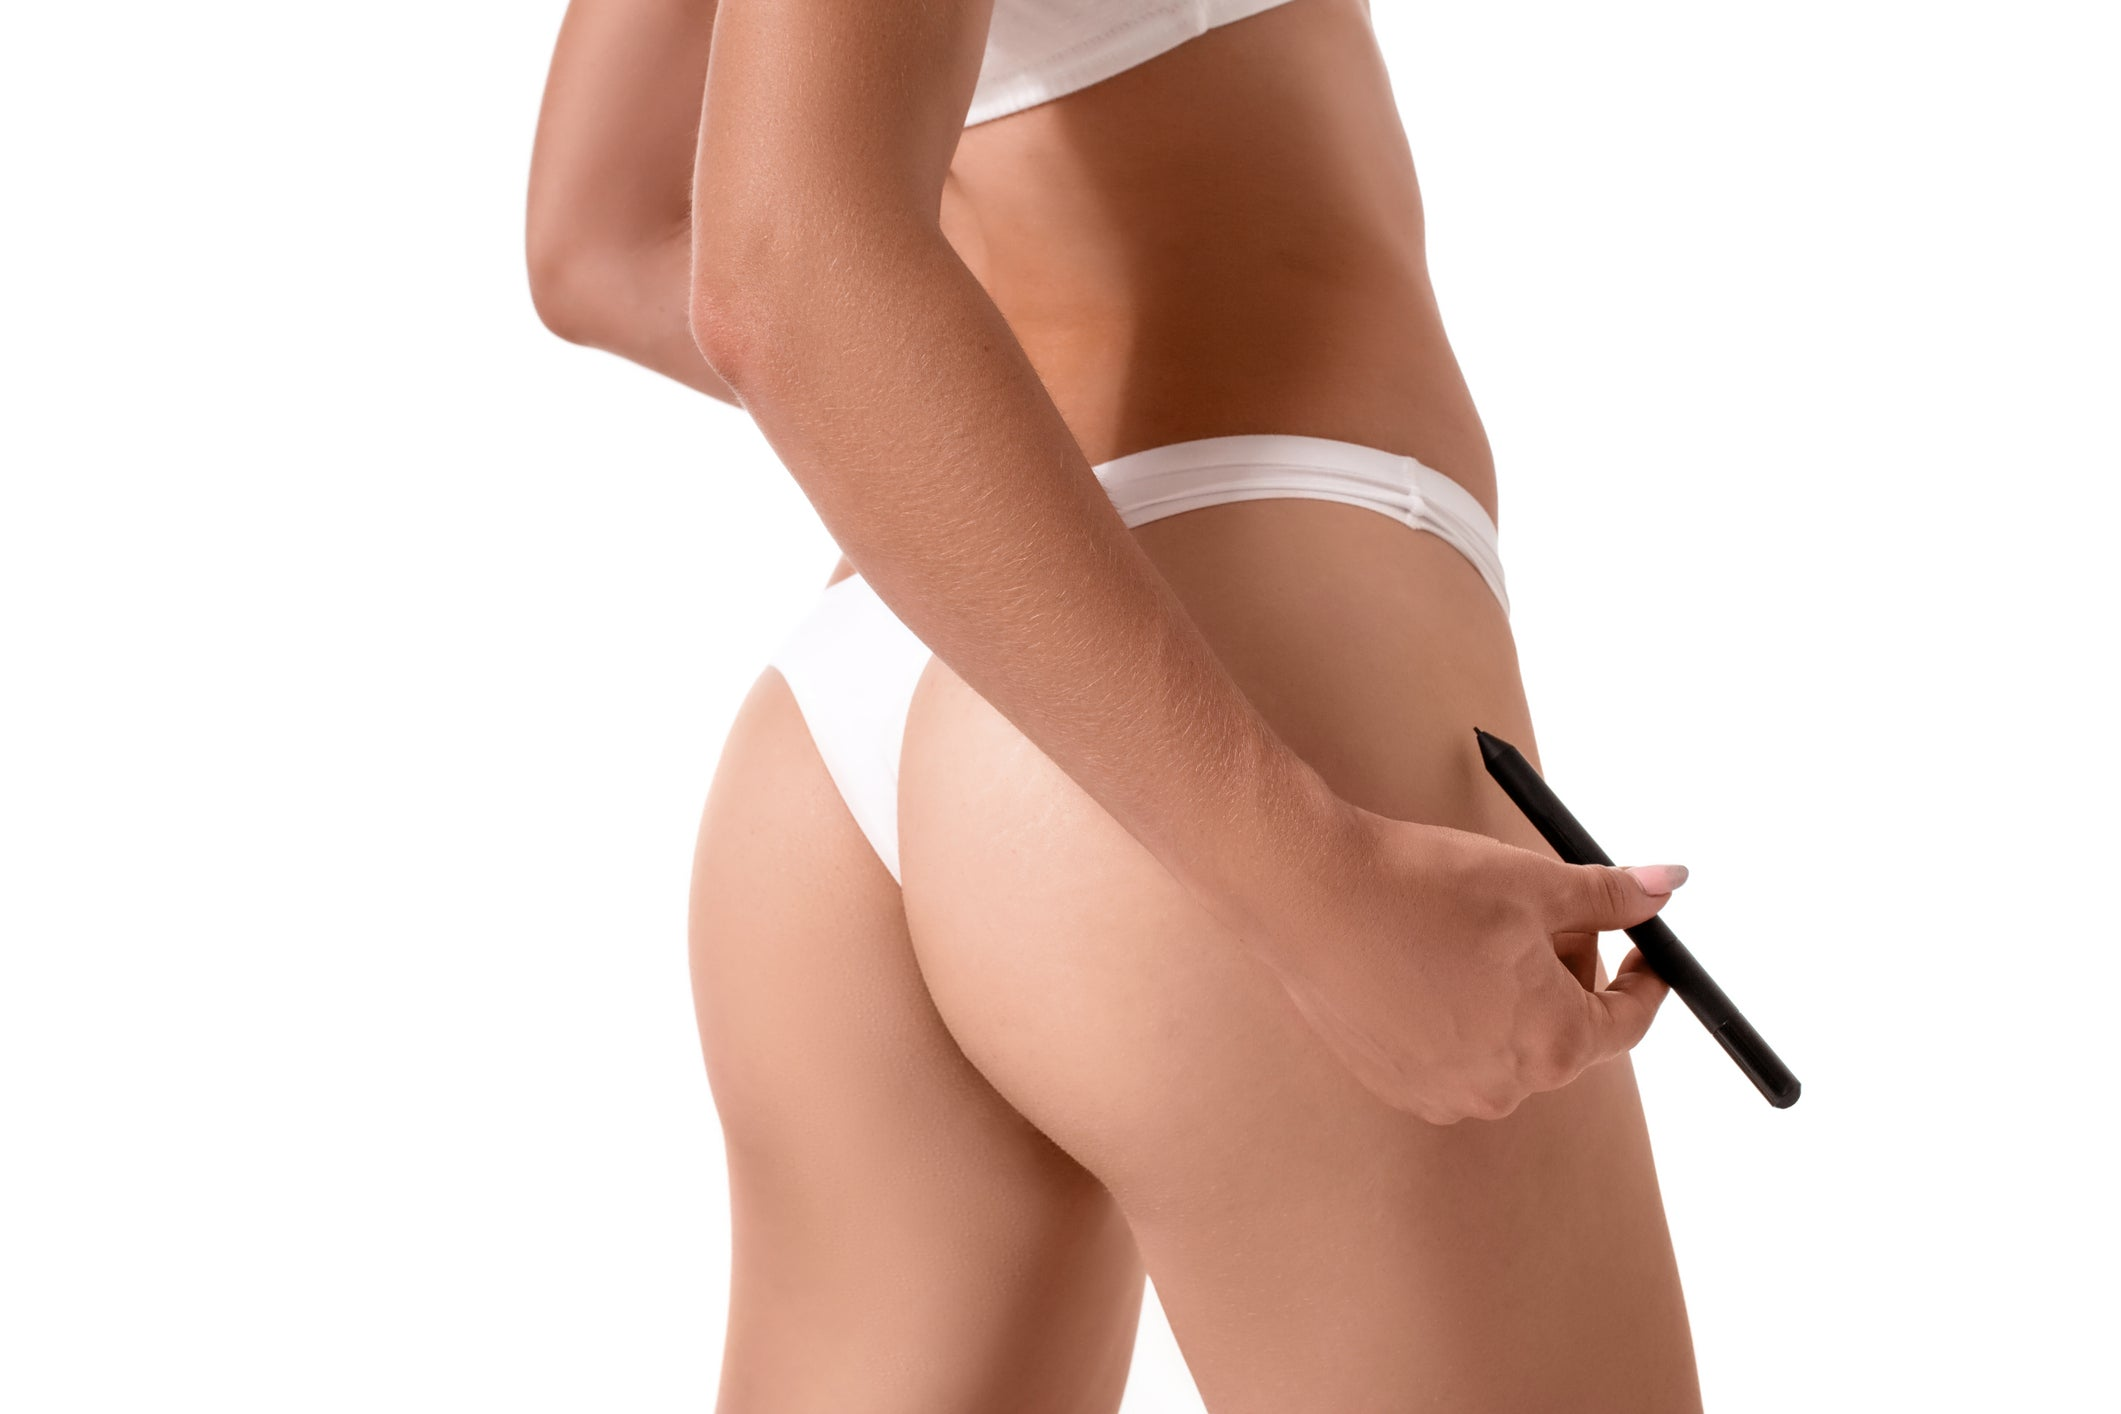 5 Reasons Why The Brazilian Butt Lift Isn't Right For You